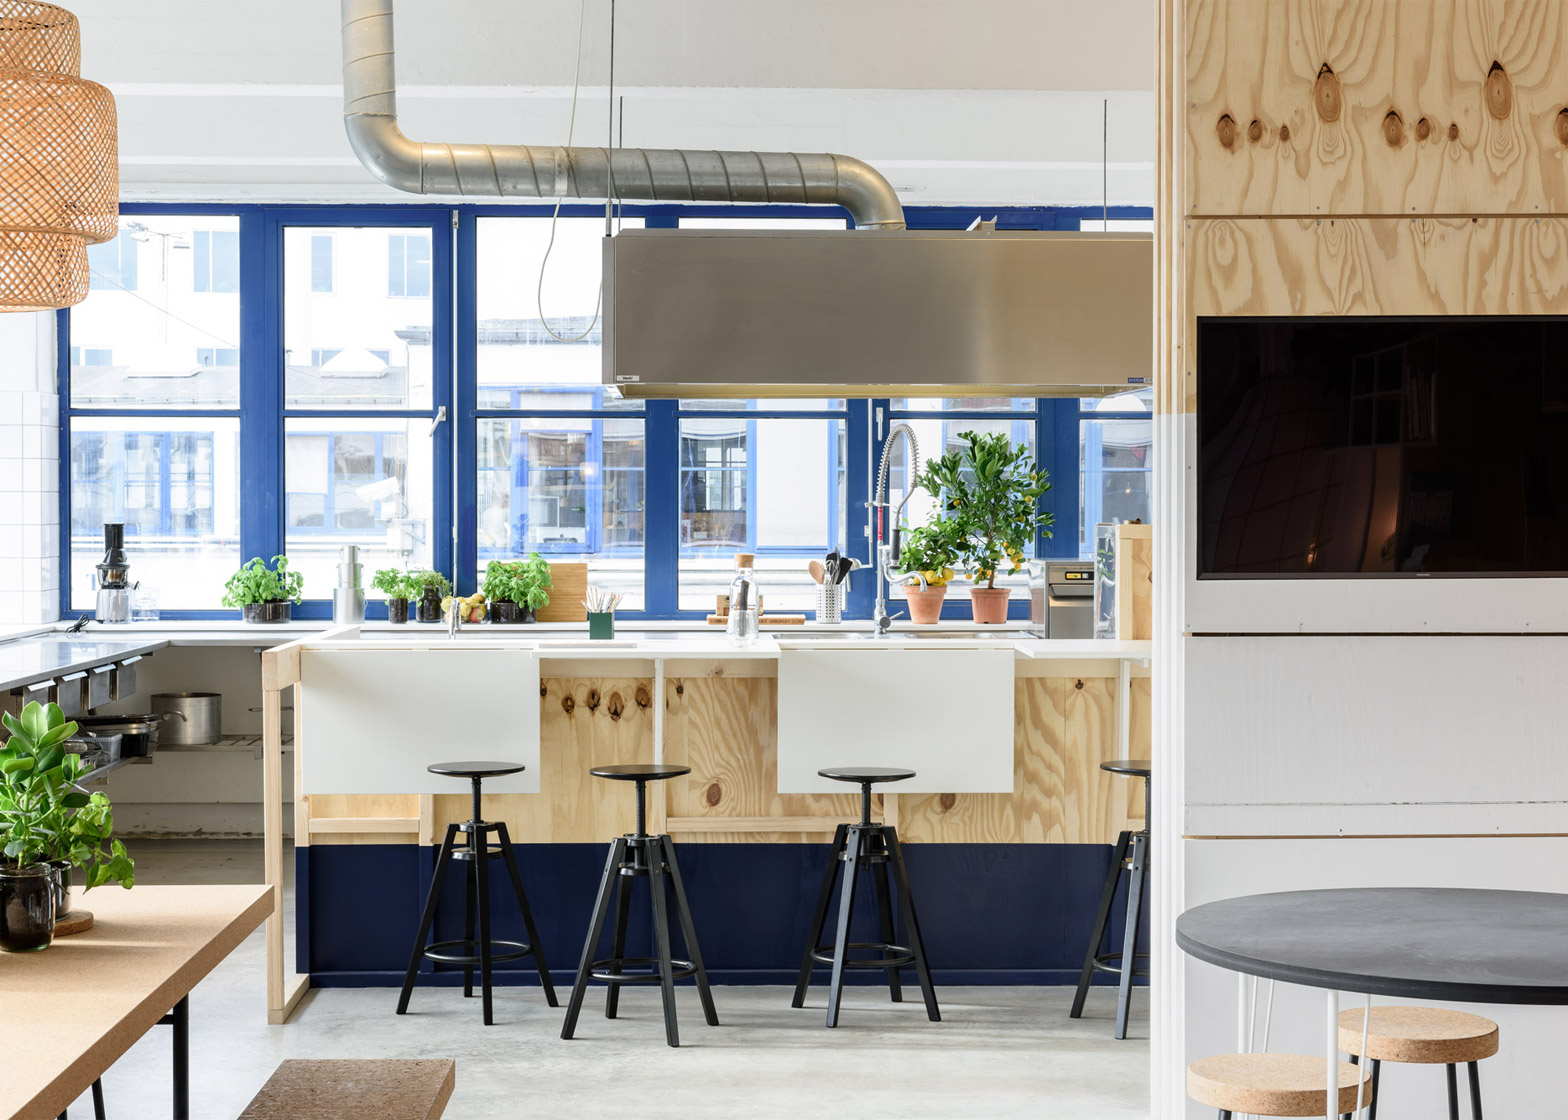 Ikea Launches Space10 Lab To Explore Sustainable Living